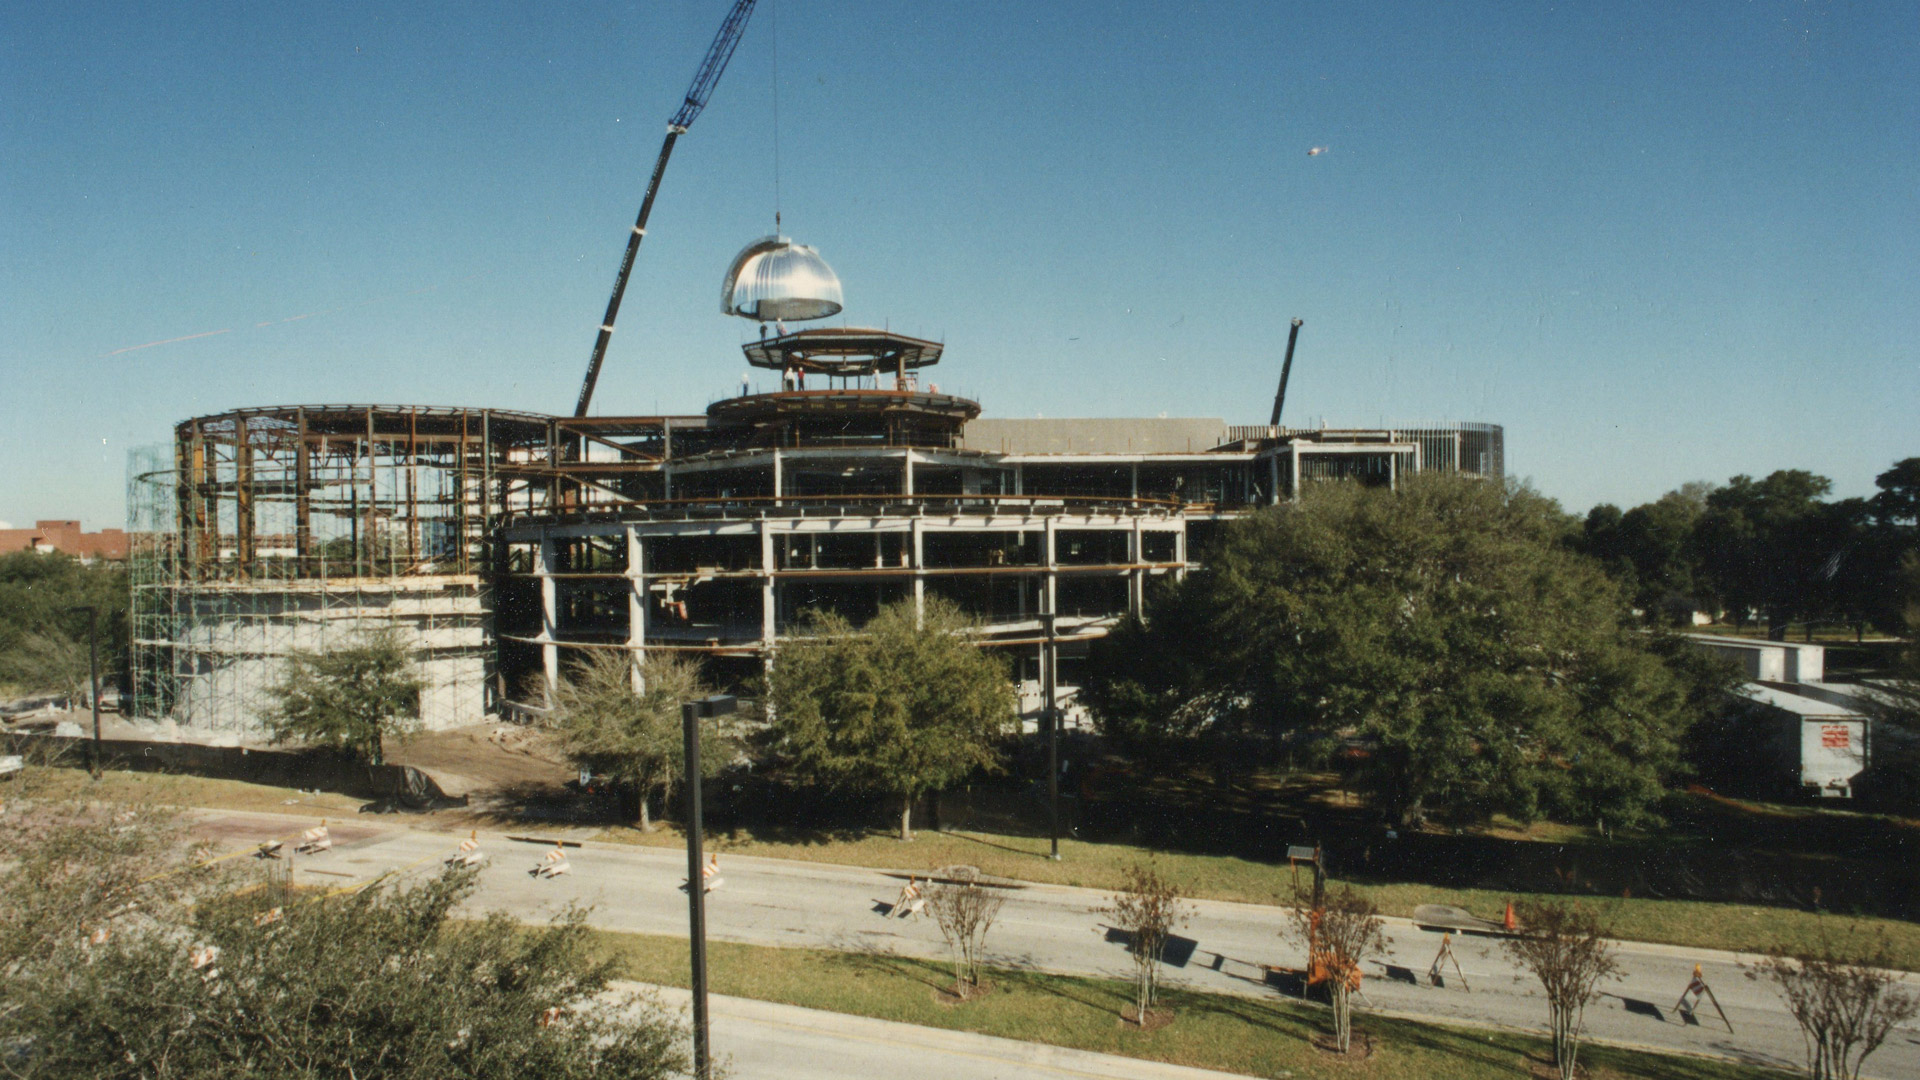 Construction of the Orlando Science Center